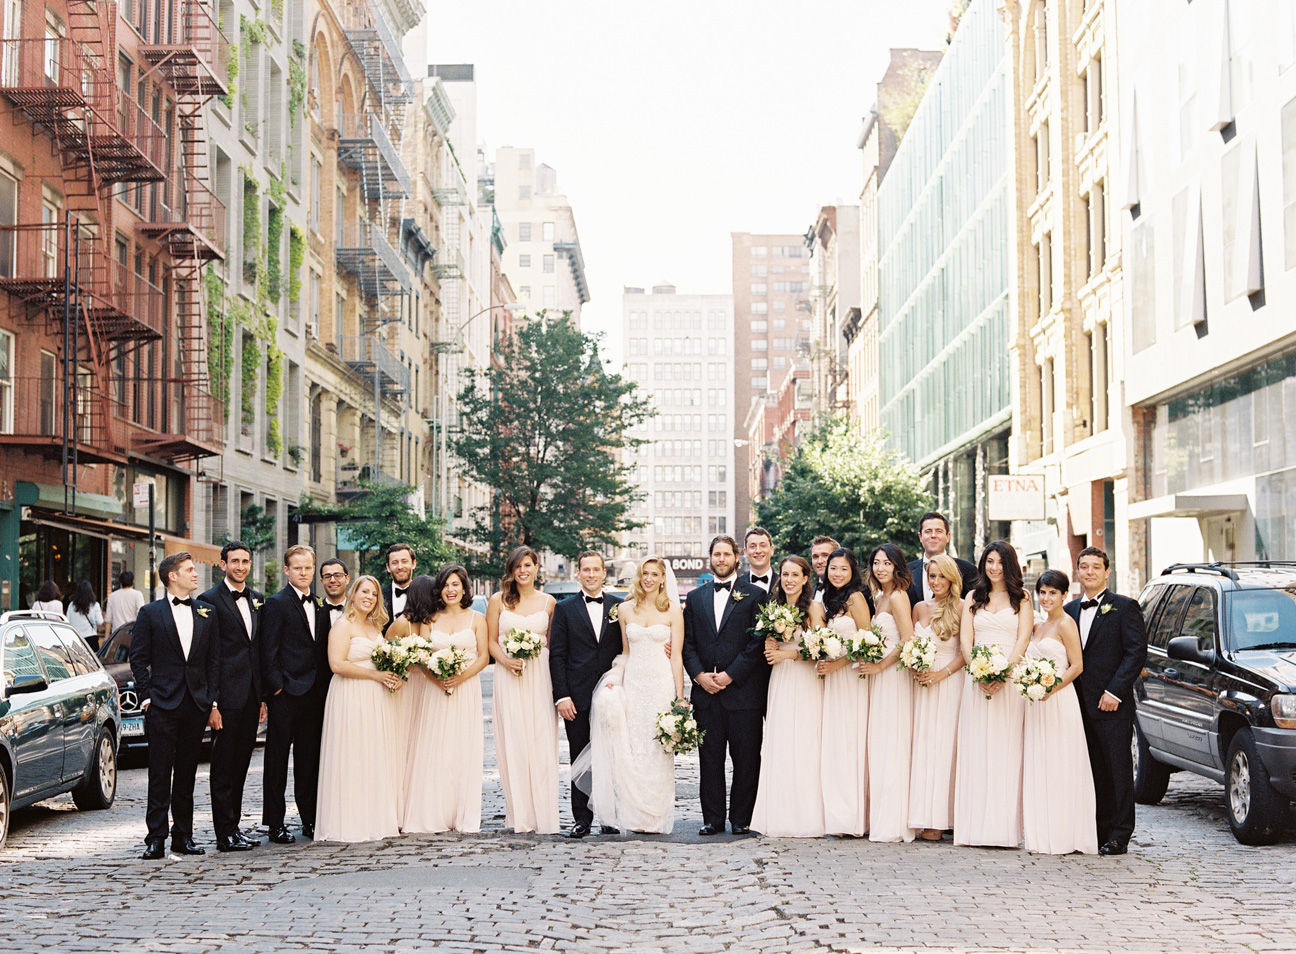 Bridal party in NYC on a cobble stone street